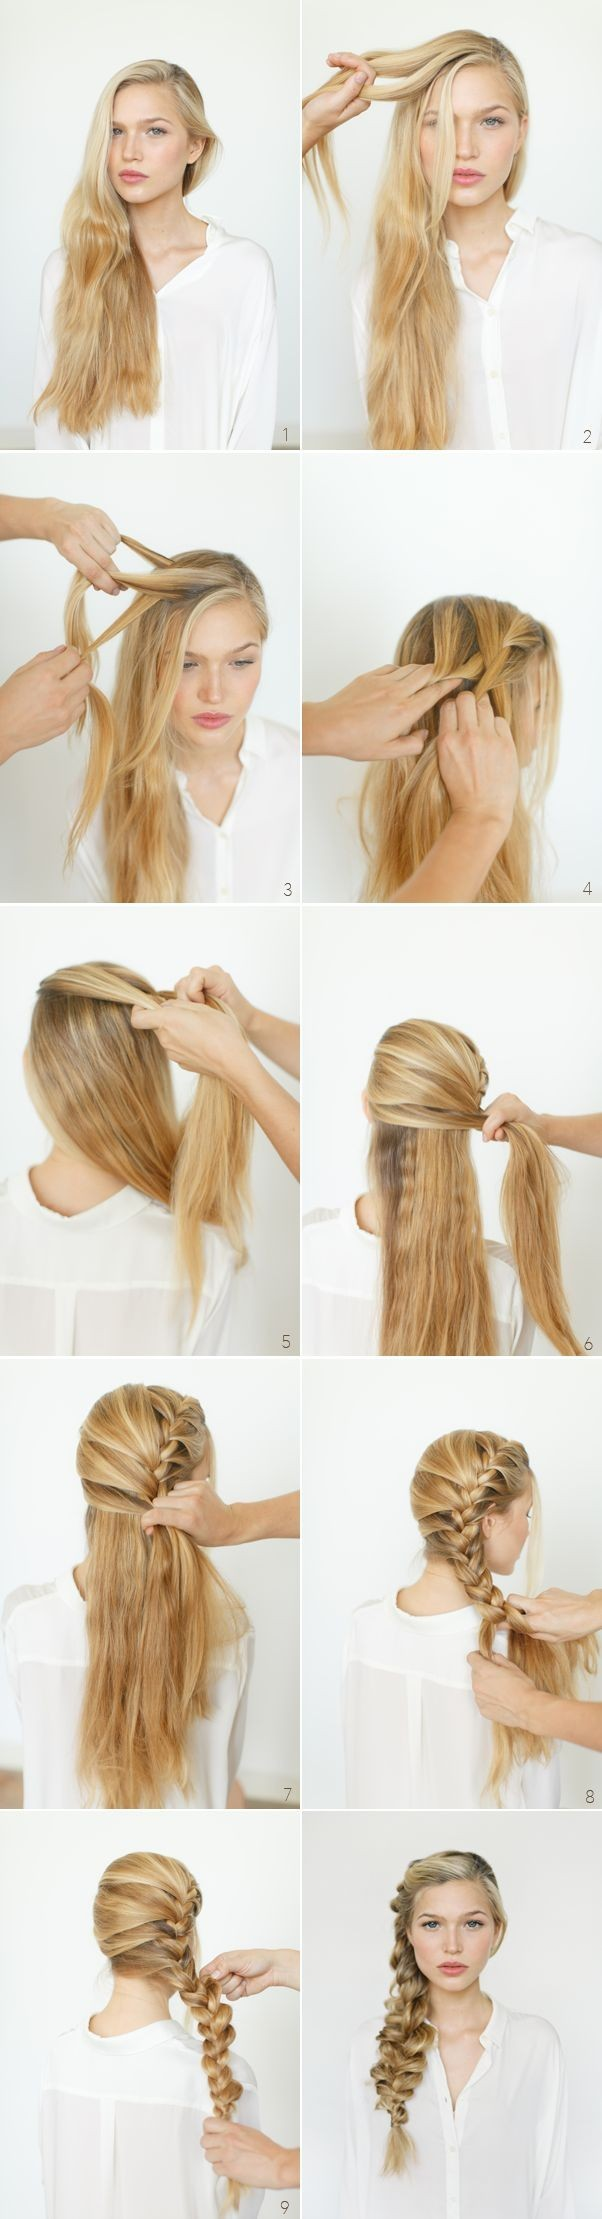 Pleasing Step By Step Hairstyles For Long Hair Long Hairstyles Ideas Short Hairstyles Gunalazisus